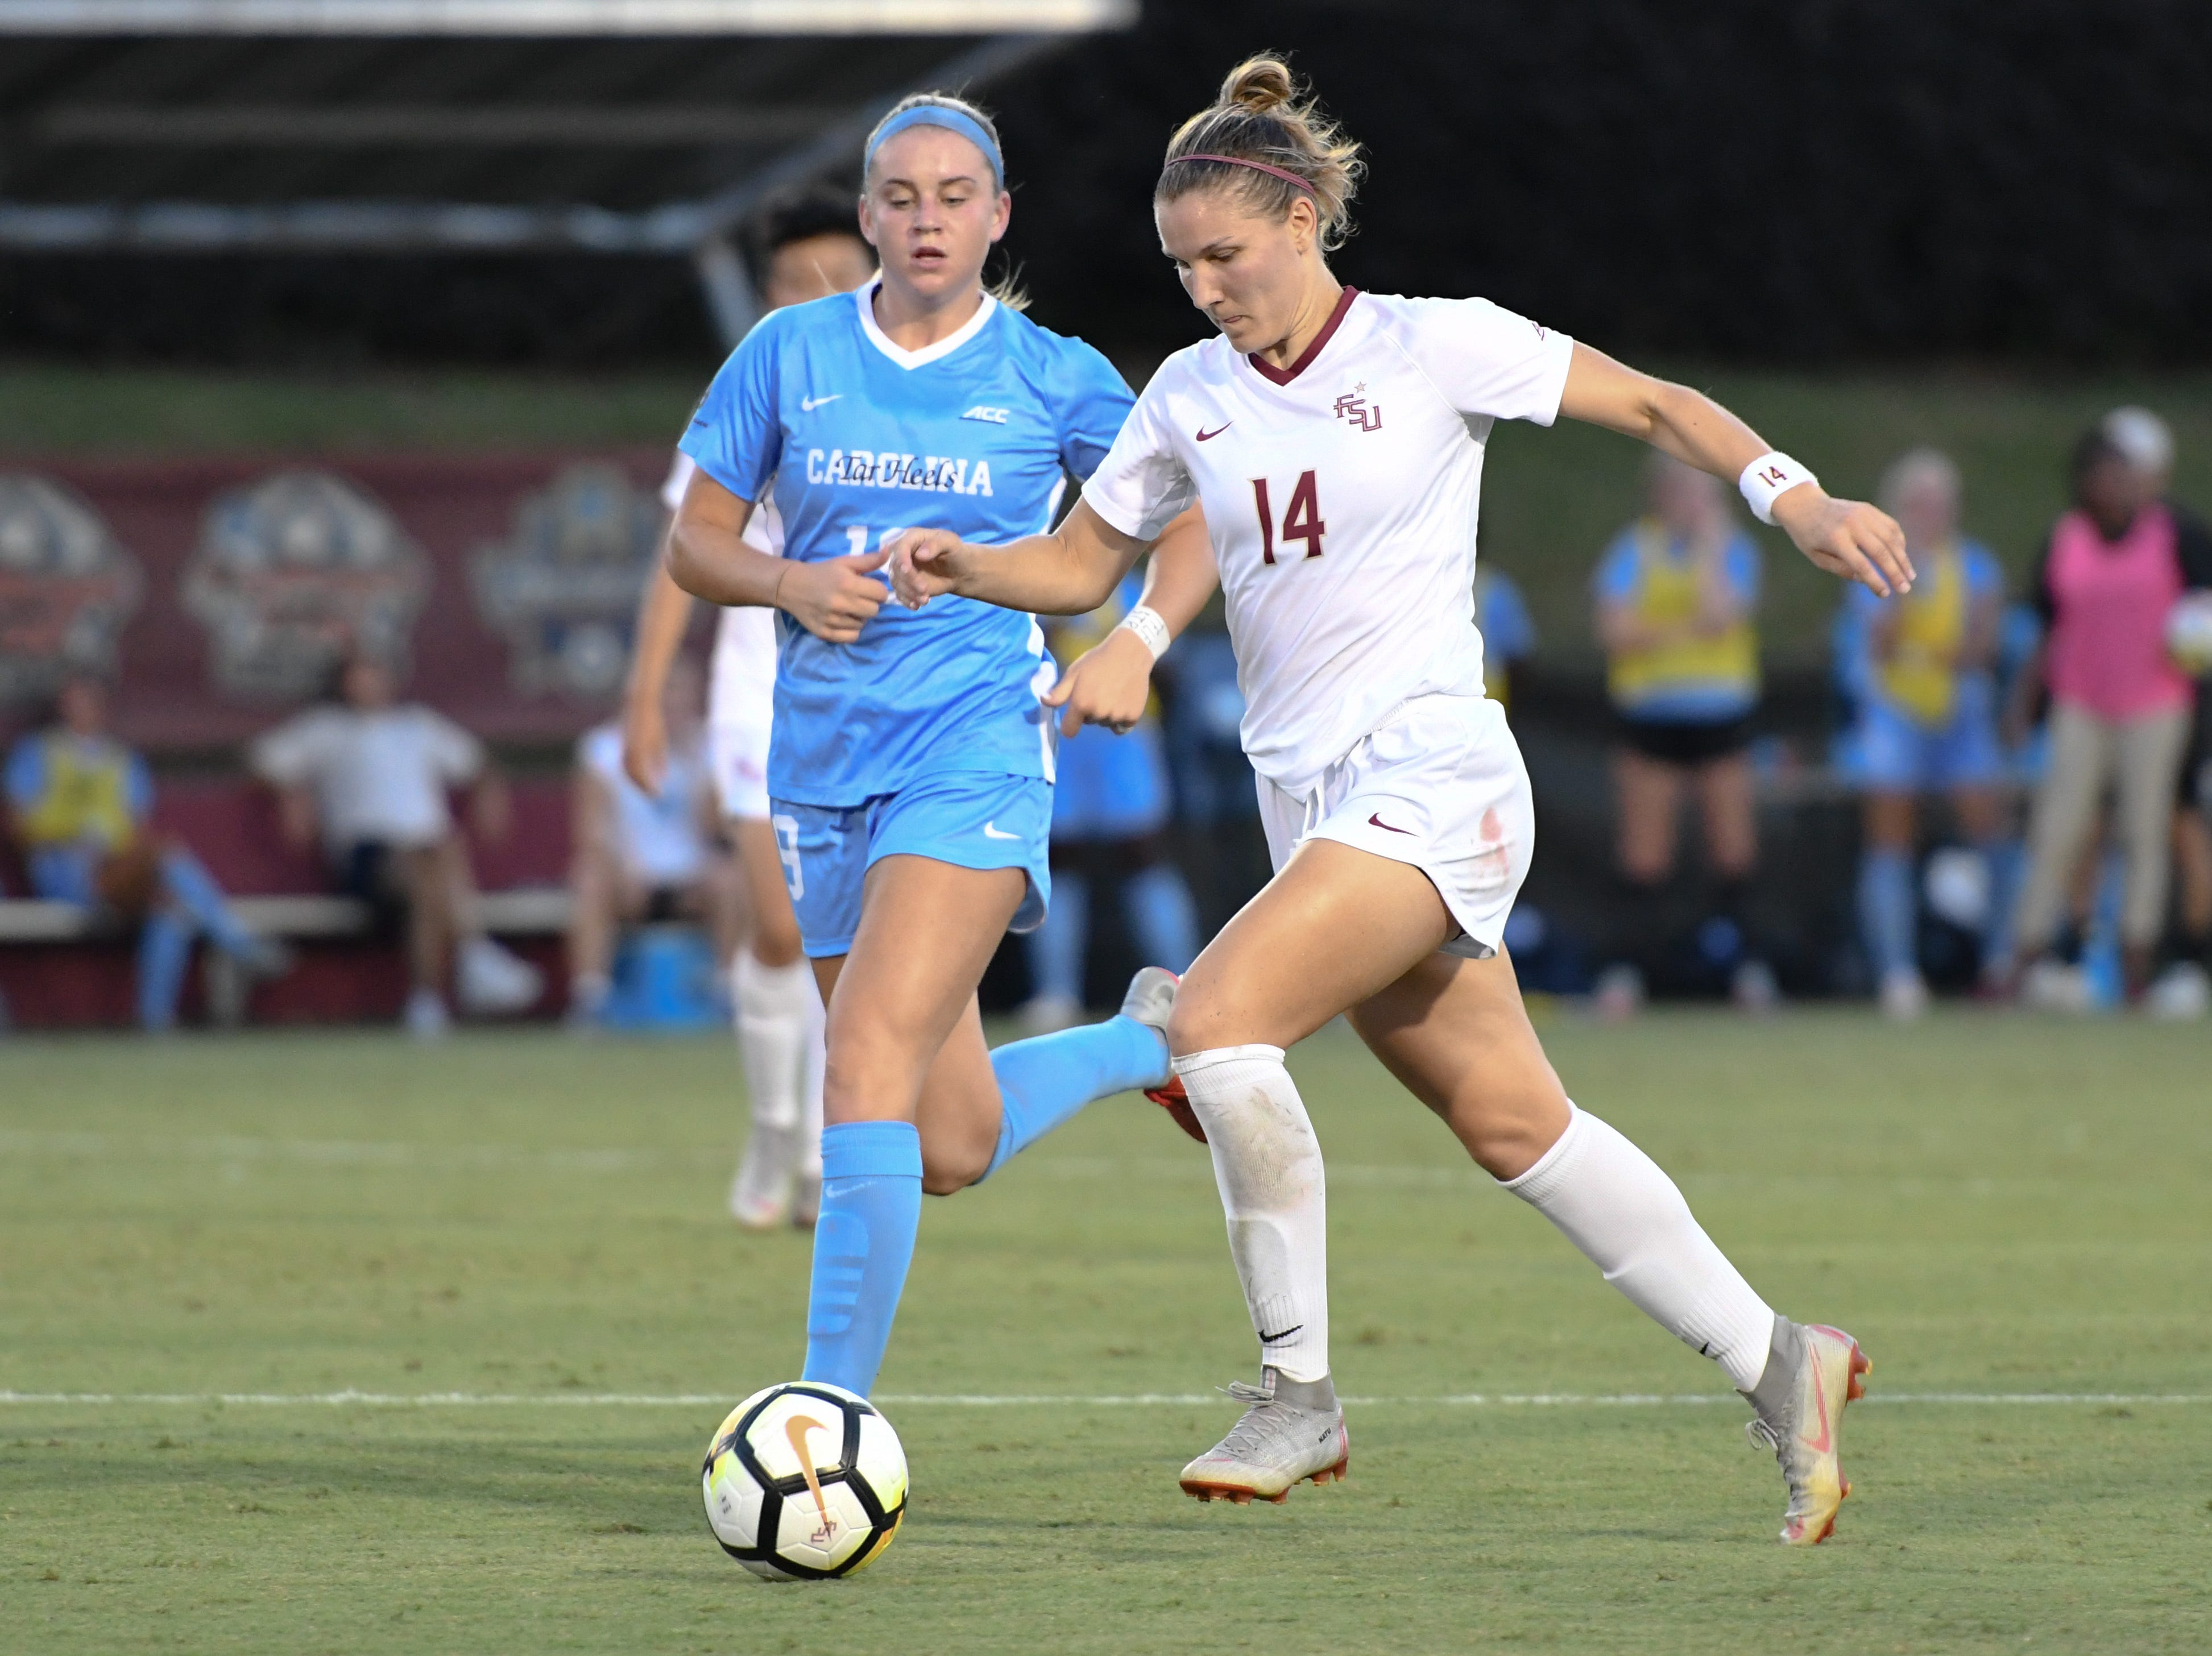 FSU senior defender Natalie Kuikka (14) moving the ball up to FSU's side of the field during the first half of FSU's game against UNC on September 14th at the Seminole Soccer Complex.